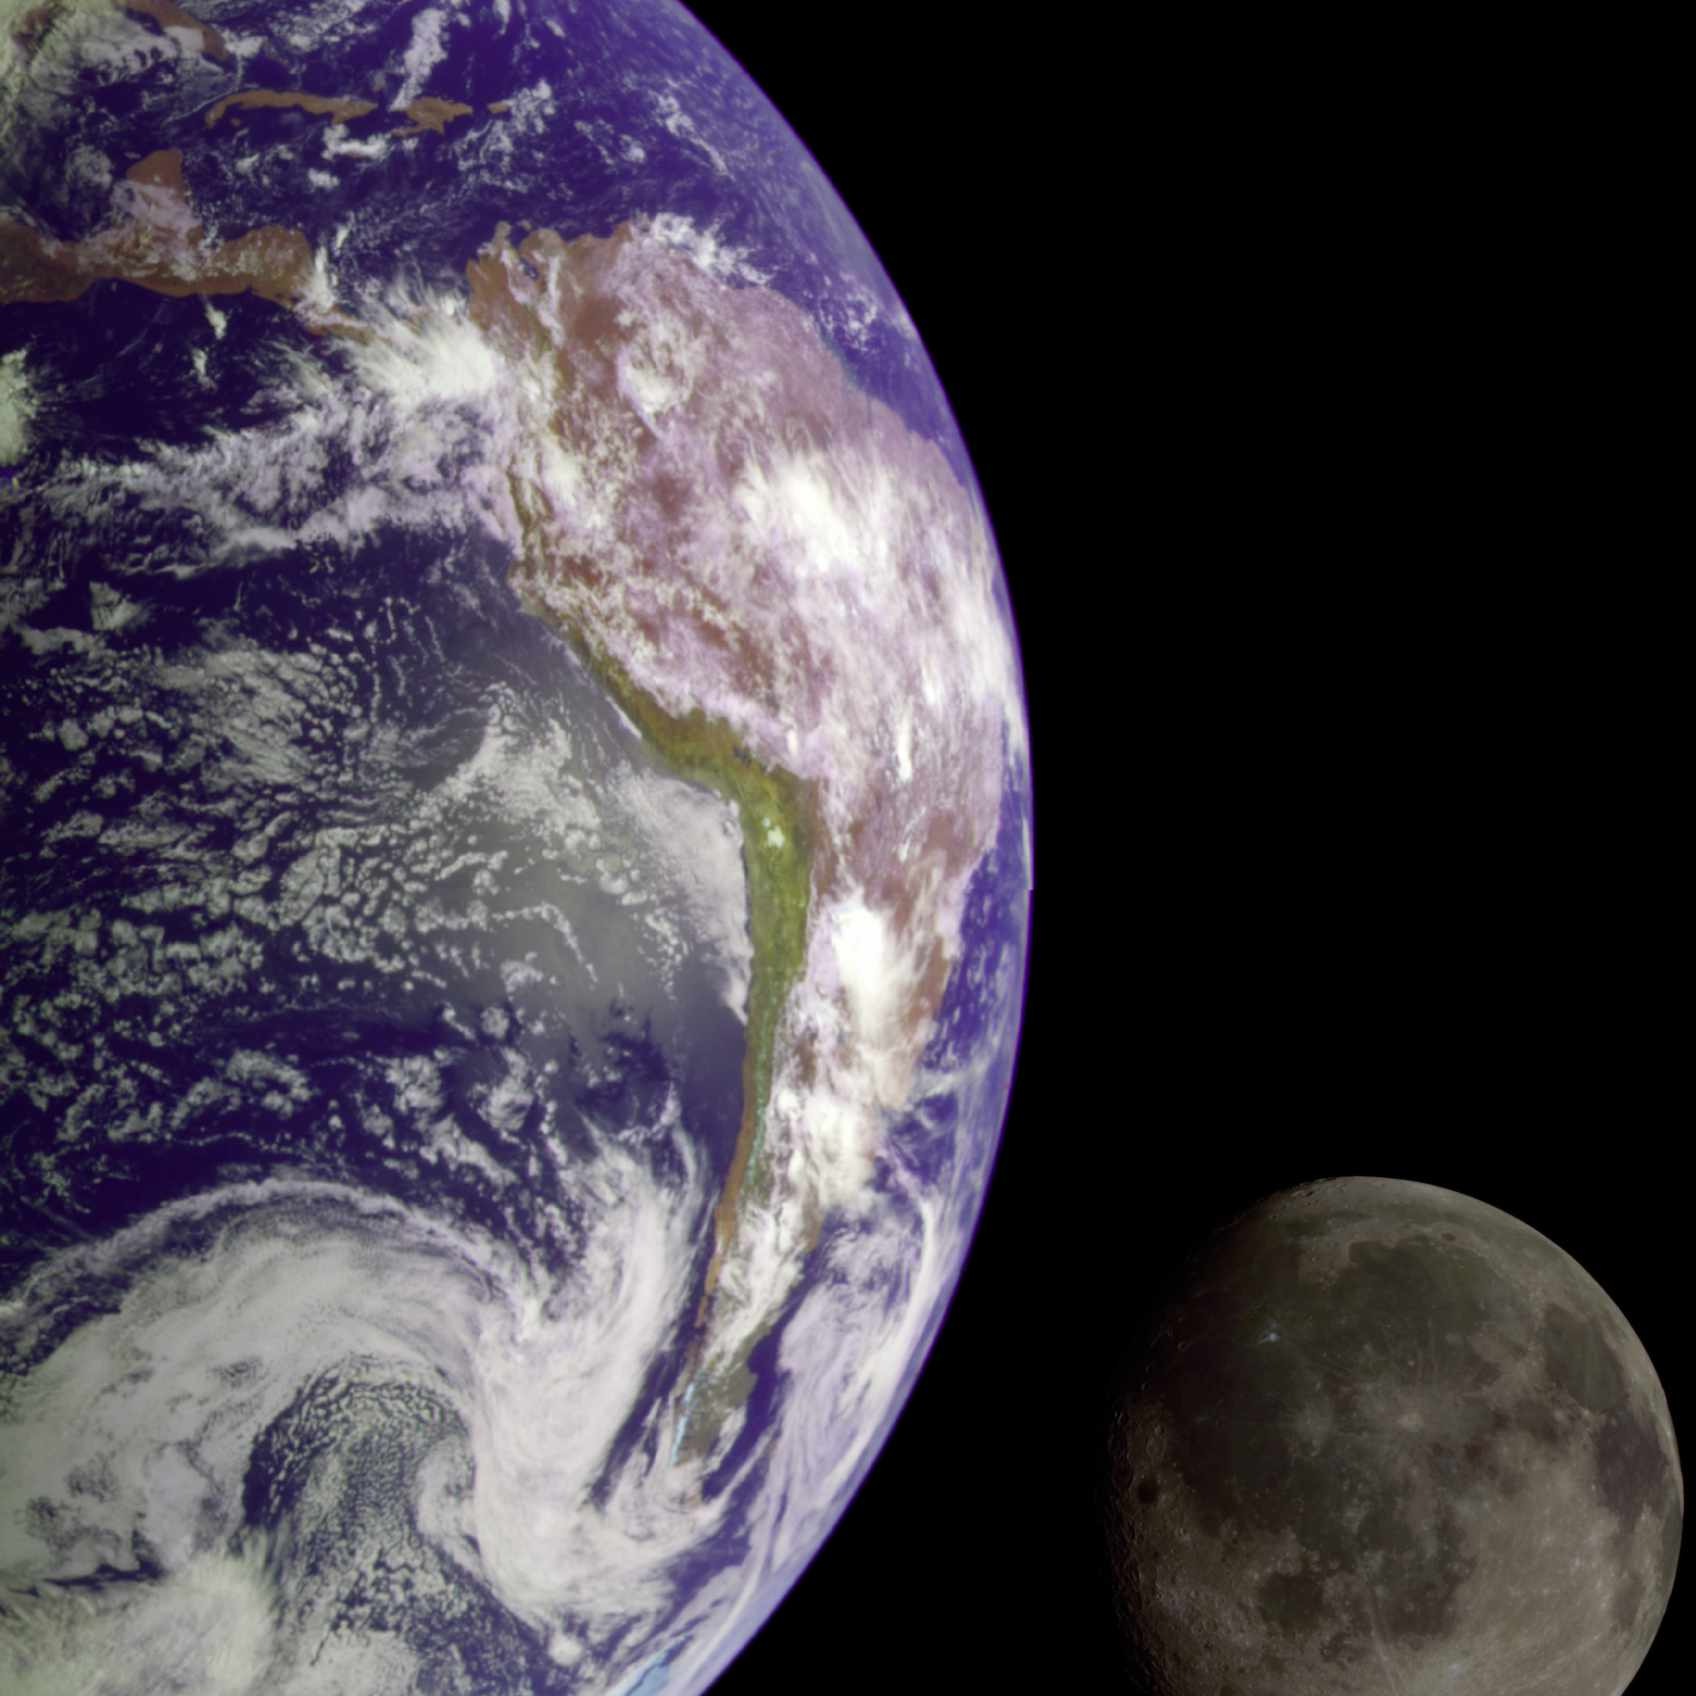 The Earth and the moon as photographed by the Galileo spacecraft in 1992